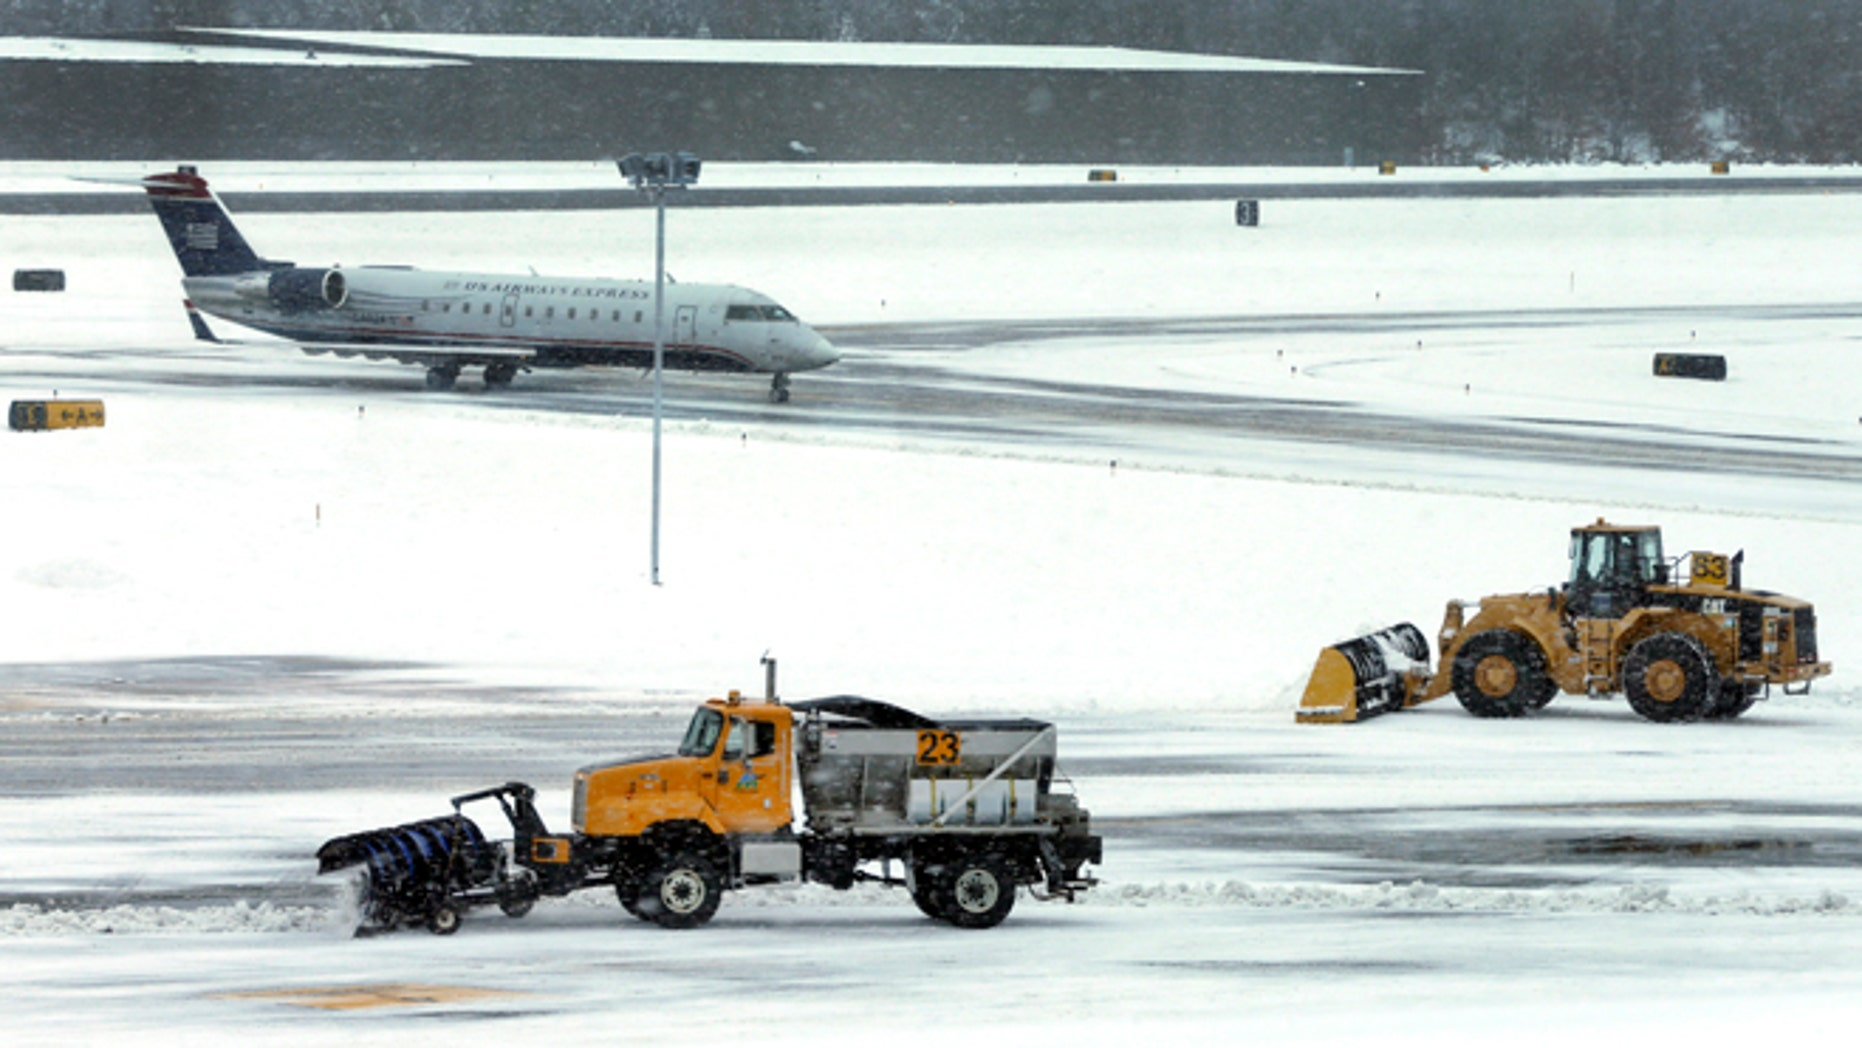 FILE - In this Thursday, Dec. 27, 2012 file photo, snow is cleared on a runway as a plane taxis into Manchester-Boston Regional Airport in Manchester, N.H.